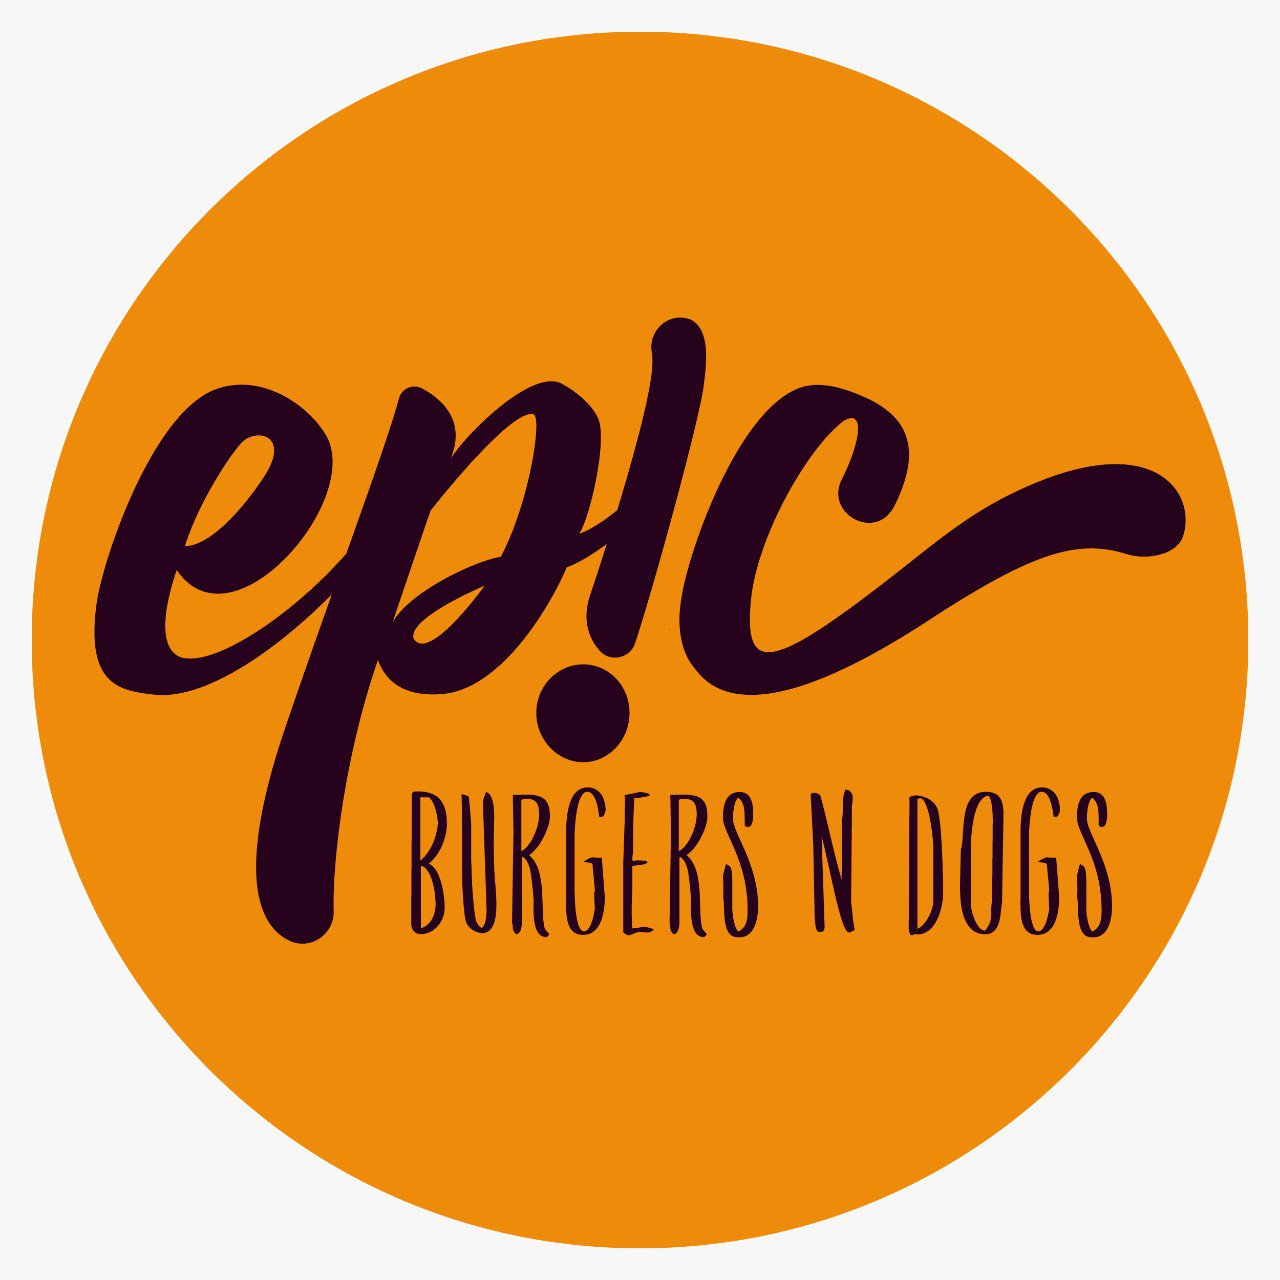 Epic Burgers N Dogs